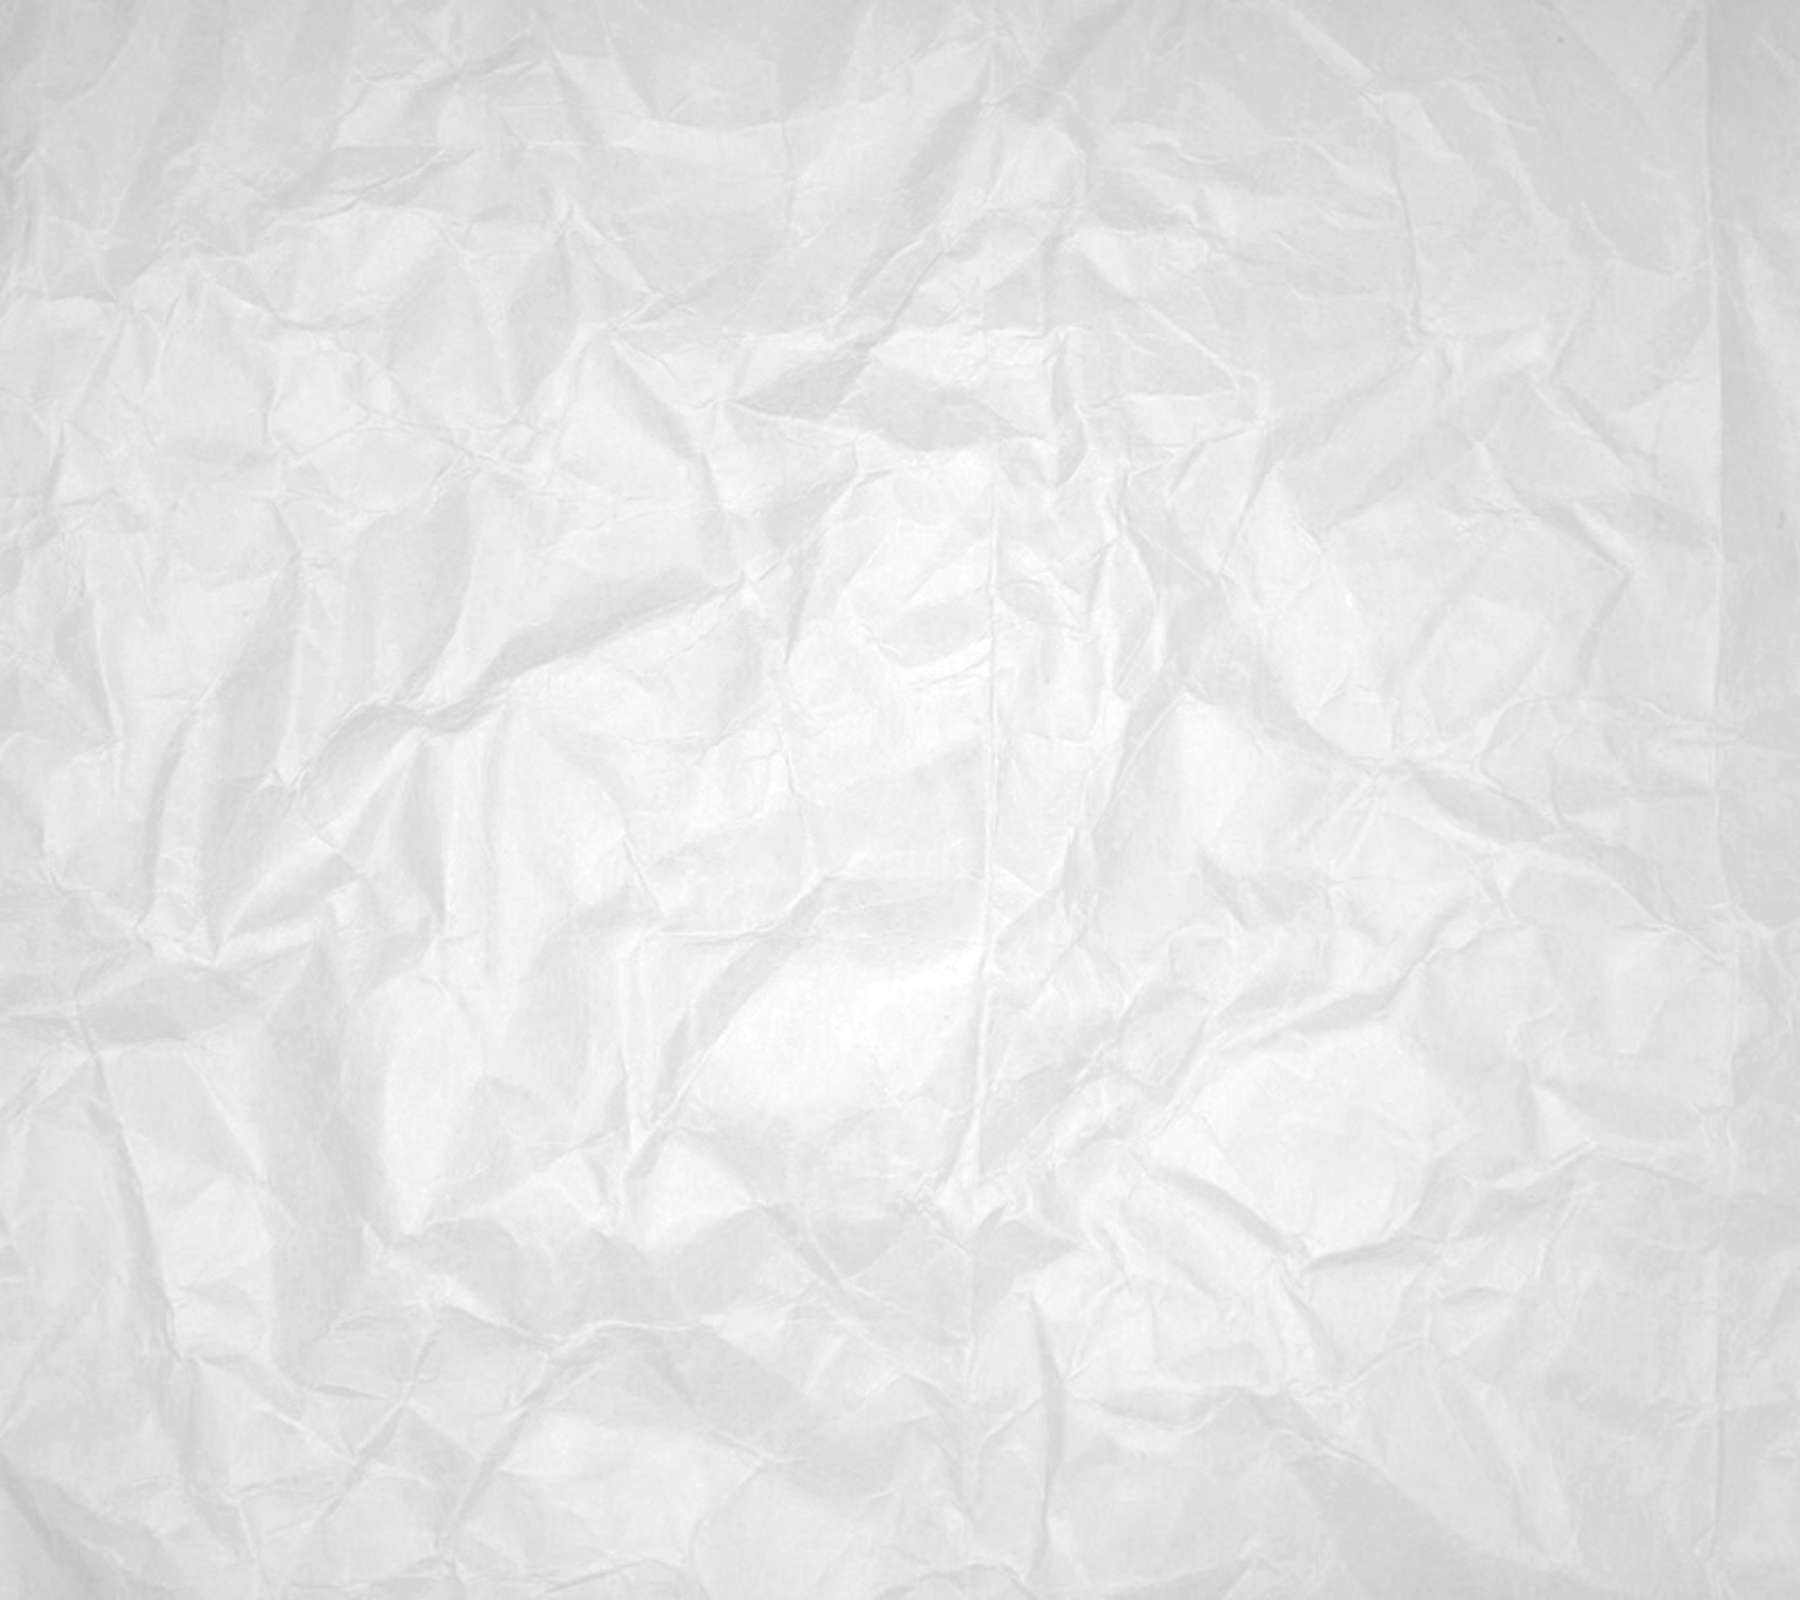 Background Wallpaper Image Wrinkled White Paper Background 1800x1600